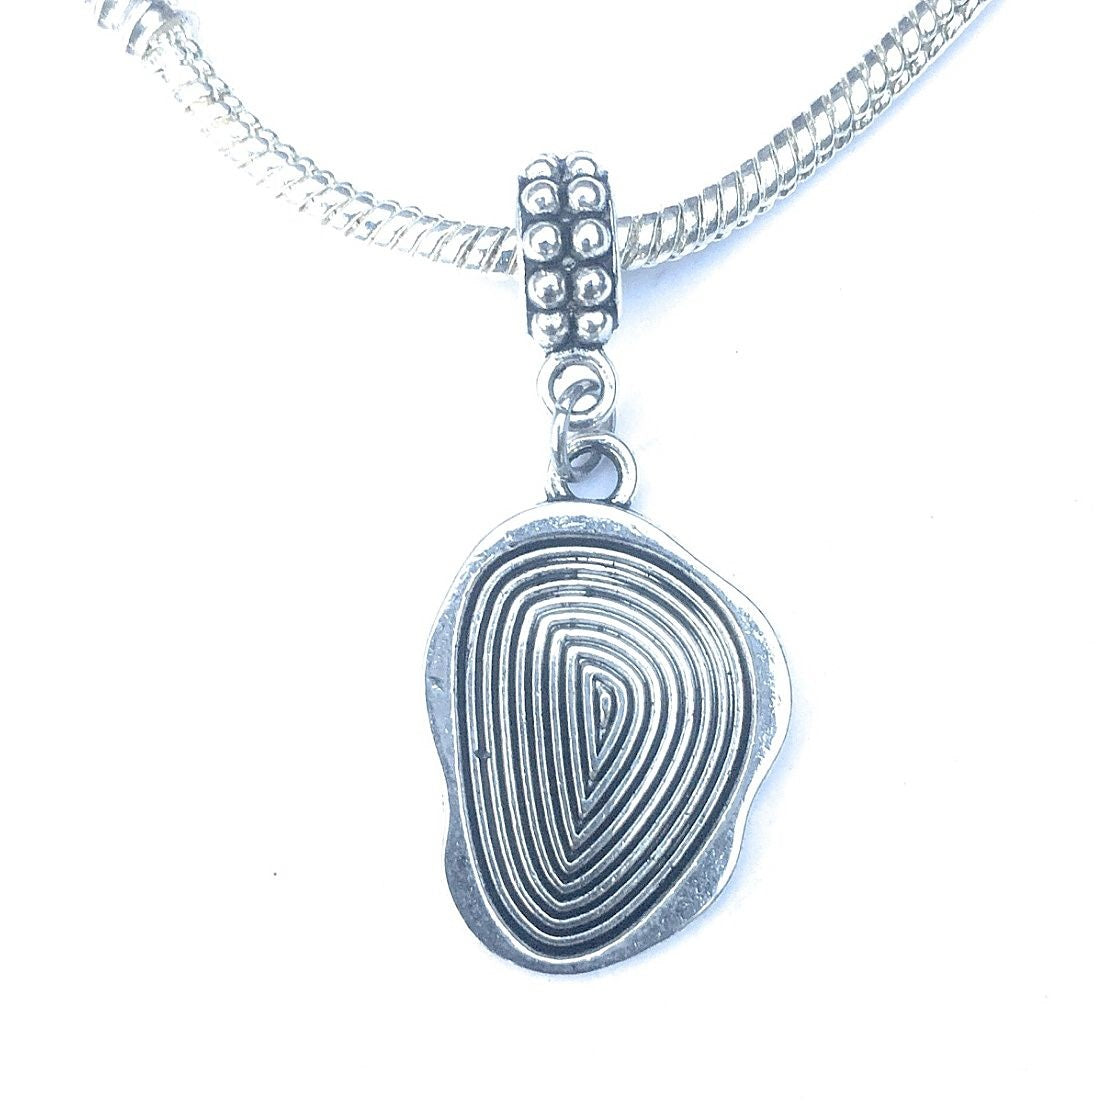 Silver Finger print Charm Bead for Bracelet.